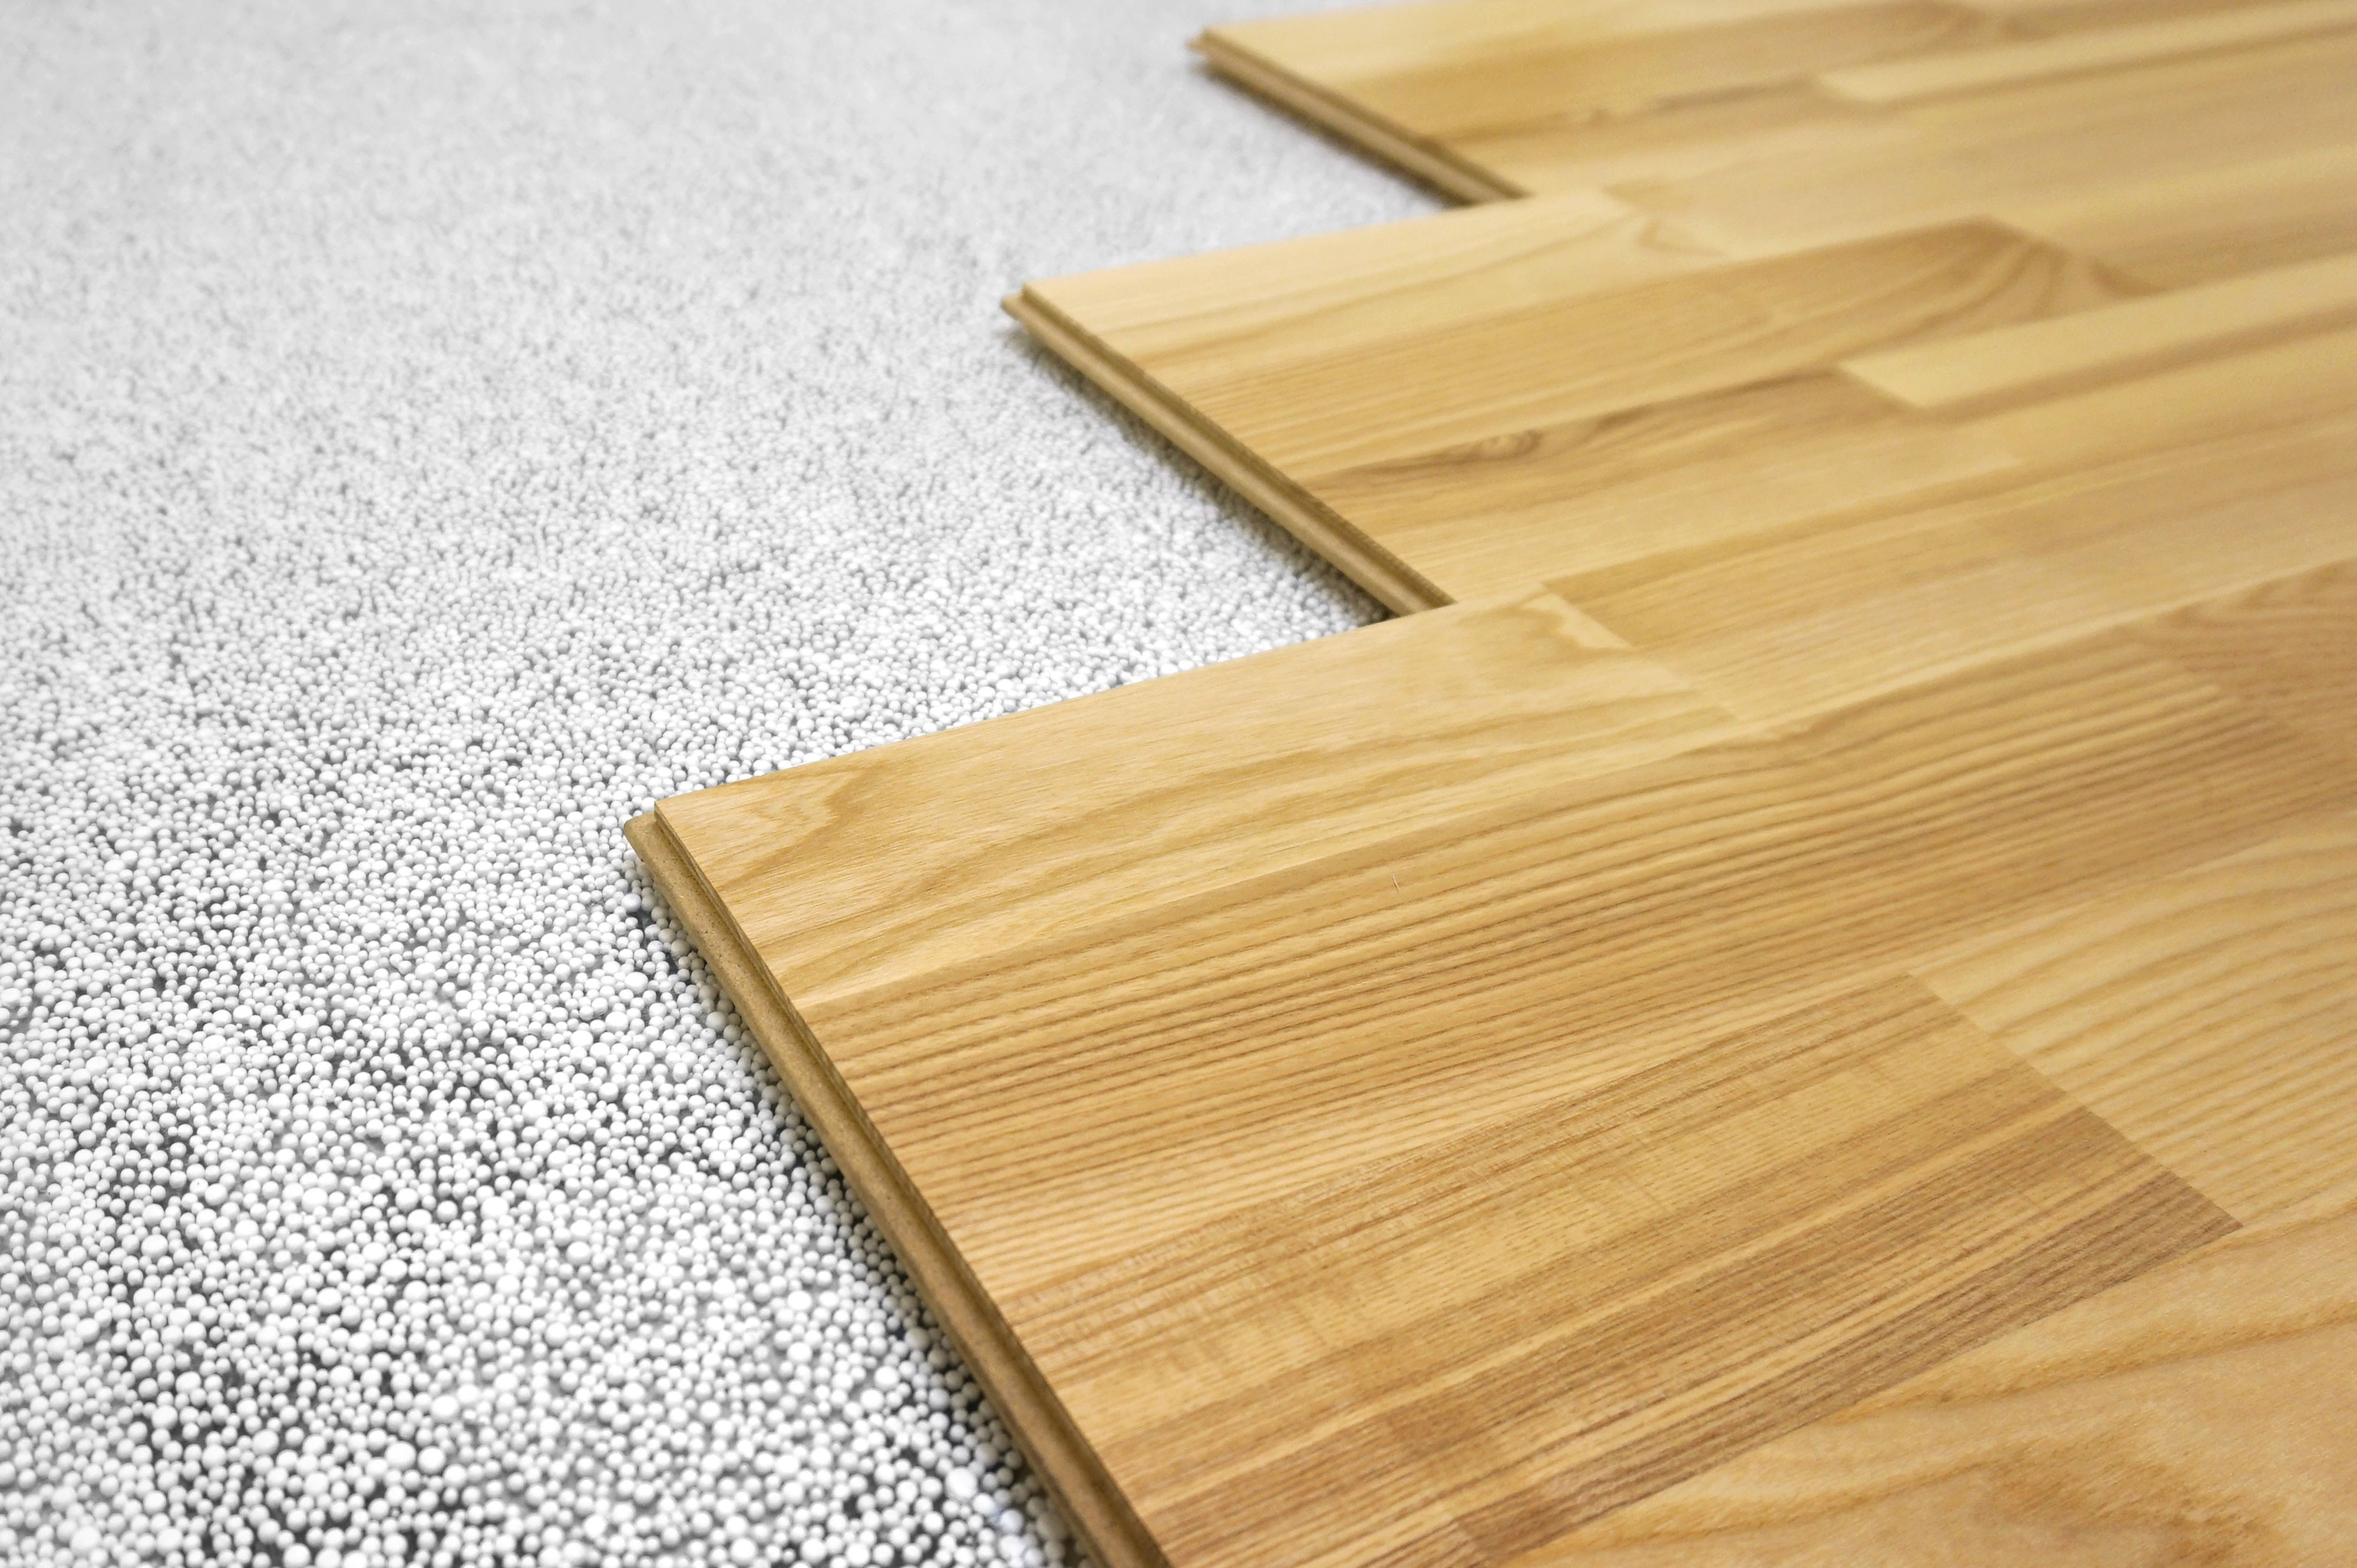 oak hardwood flooring denver of what does it cost to install laminate flooring angies list pertaining to wood lam